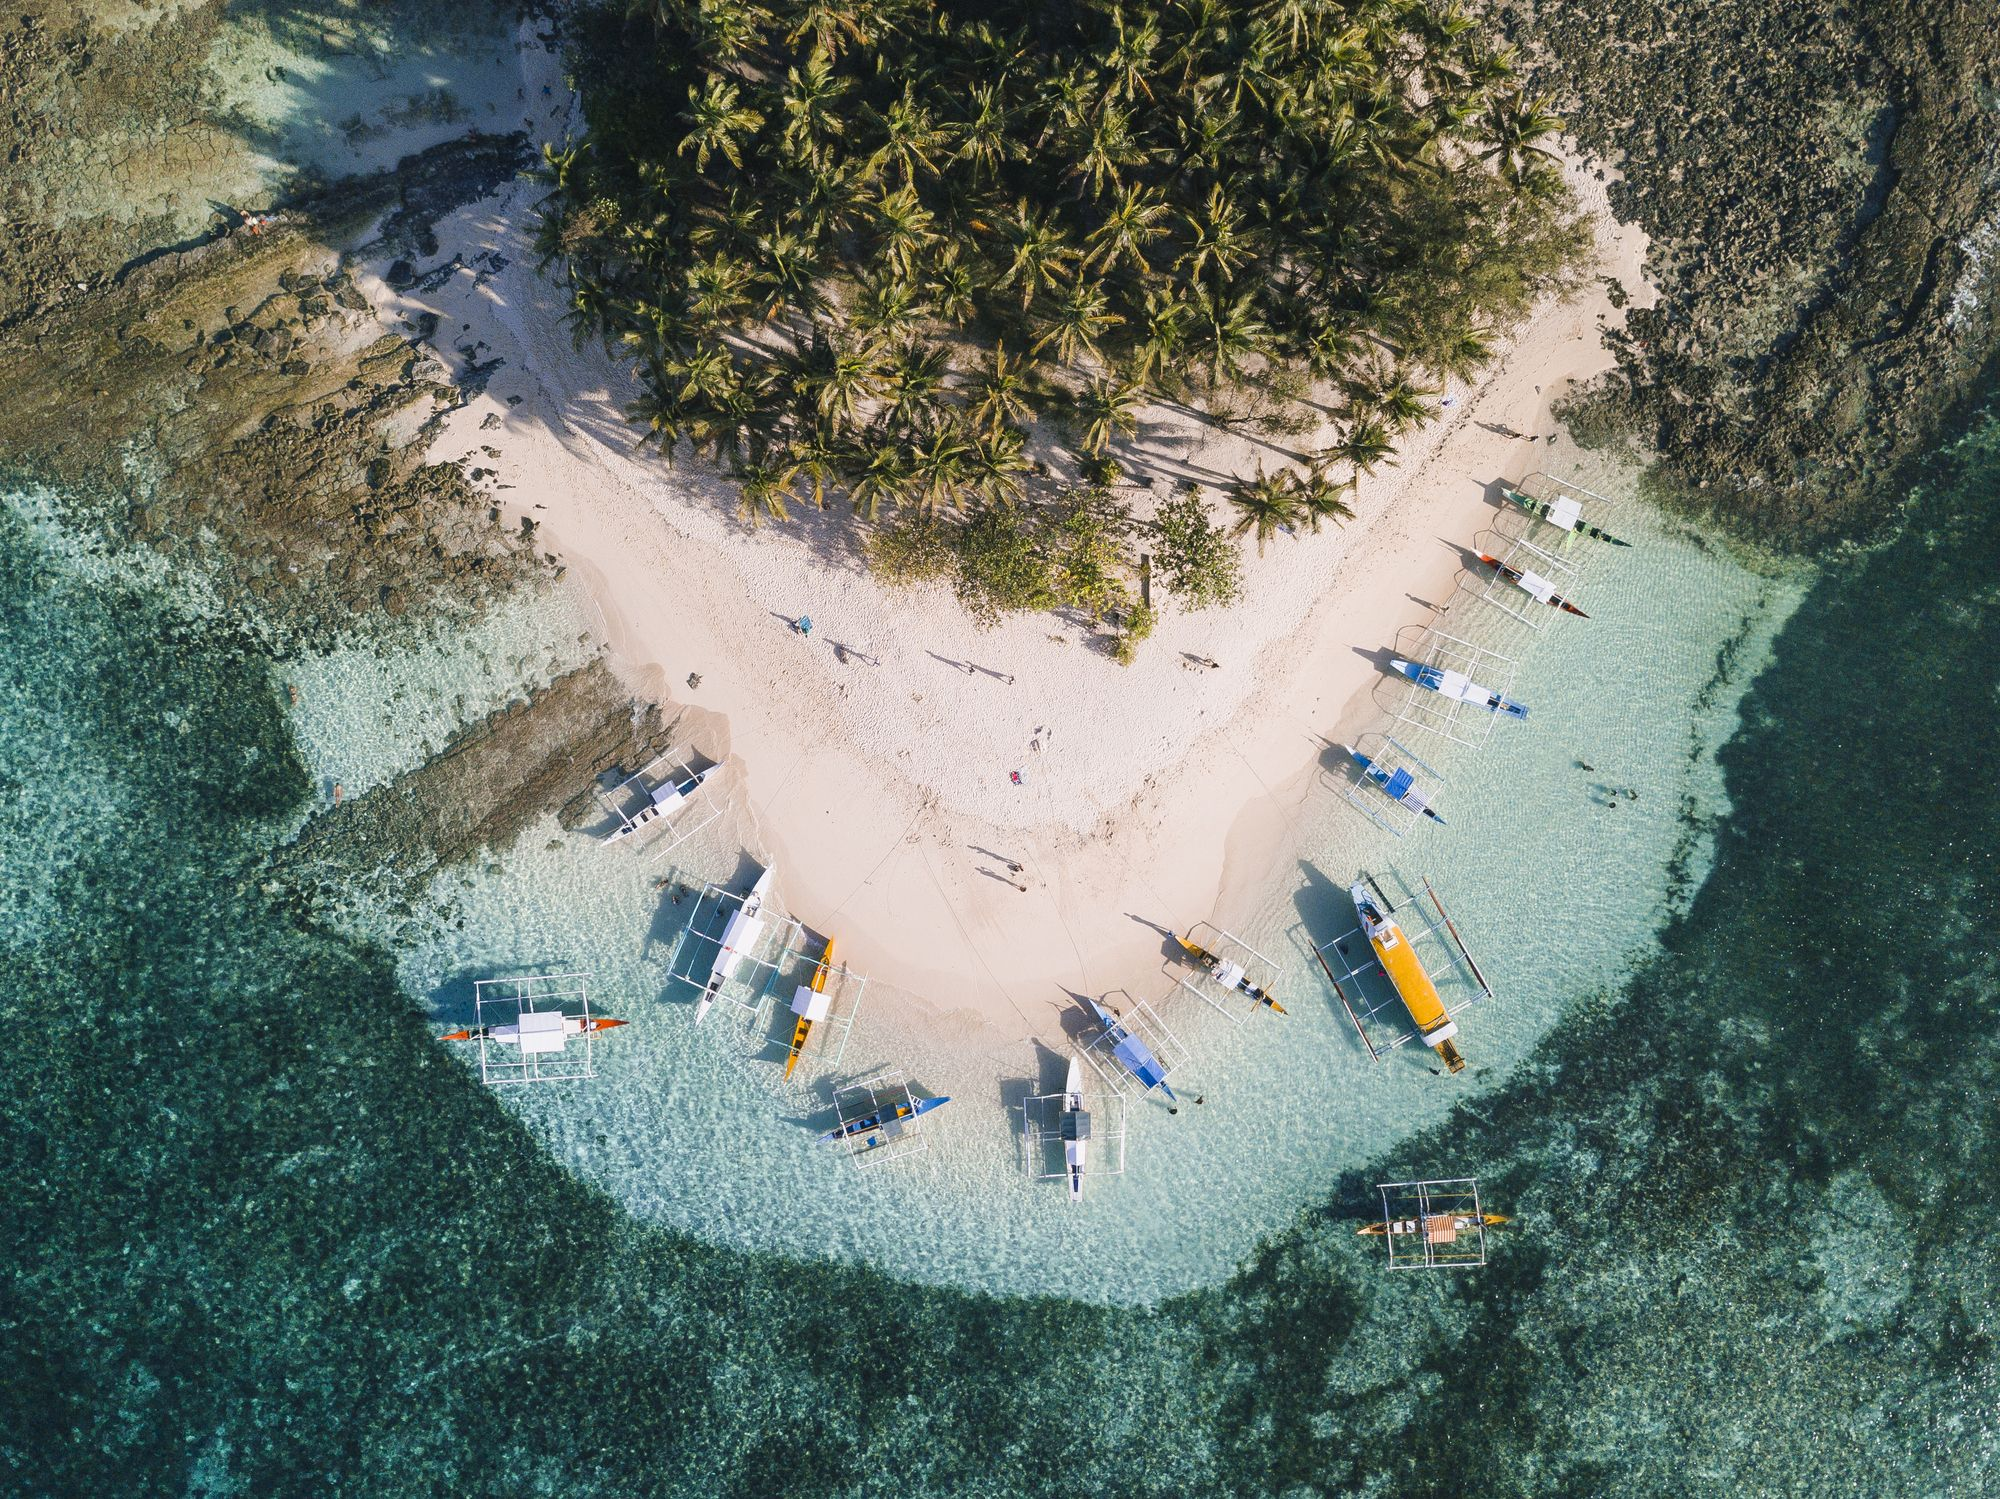 Siargao is not only the surfing capital of the Philippines but also the up and coming vacation destination for local and international tourists because of its beautiful beaches, hospitable residents, islander lifestyle and world-class resorts. This photo was taken by a DJI Mavic Pro drone at Guyam Island just a few kilometers off-shore from Cloud 9 surfing spot.